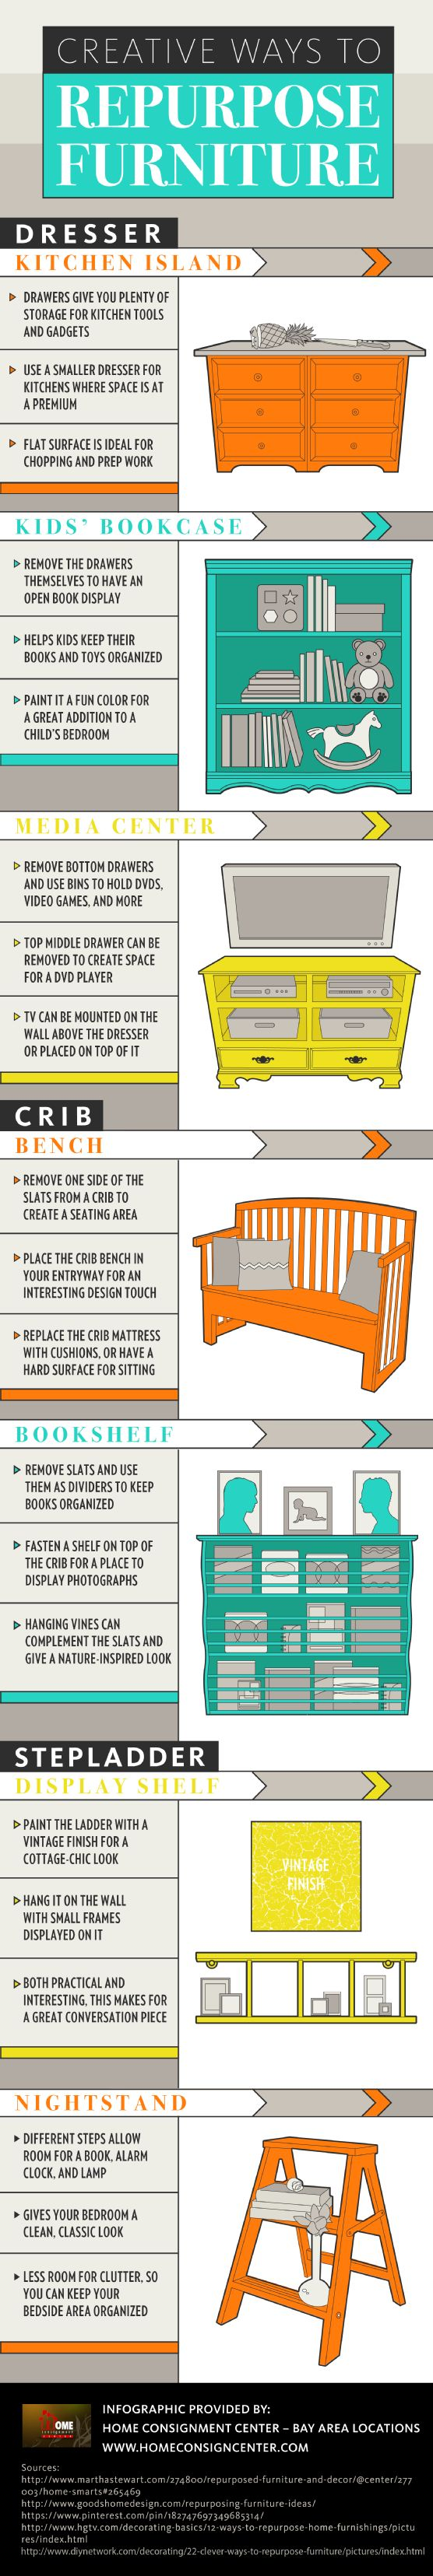 Baby crib gertie - 228 Best Images About Diy Crib Repurposed On Pinterest Toy Chest Baby Changing Tables And Diy Dog Bed